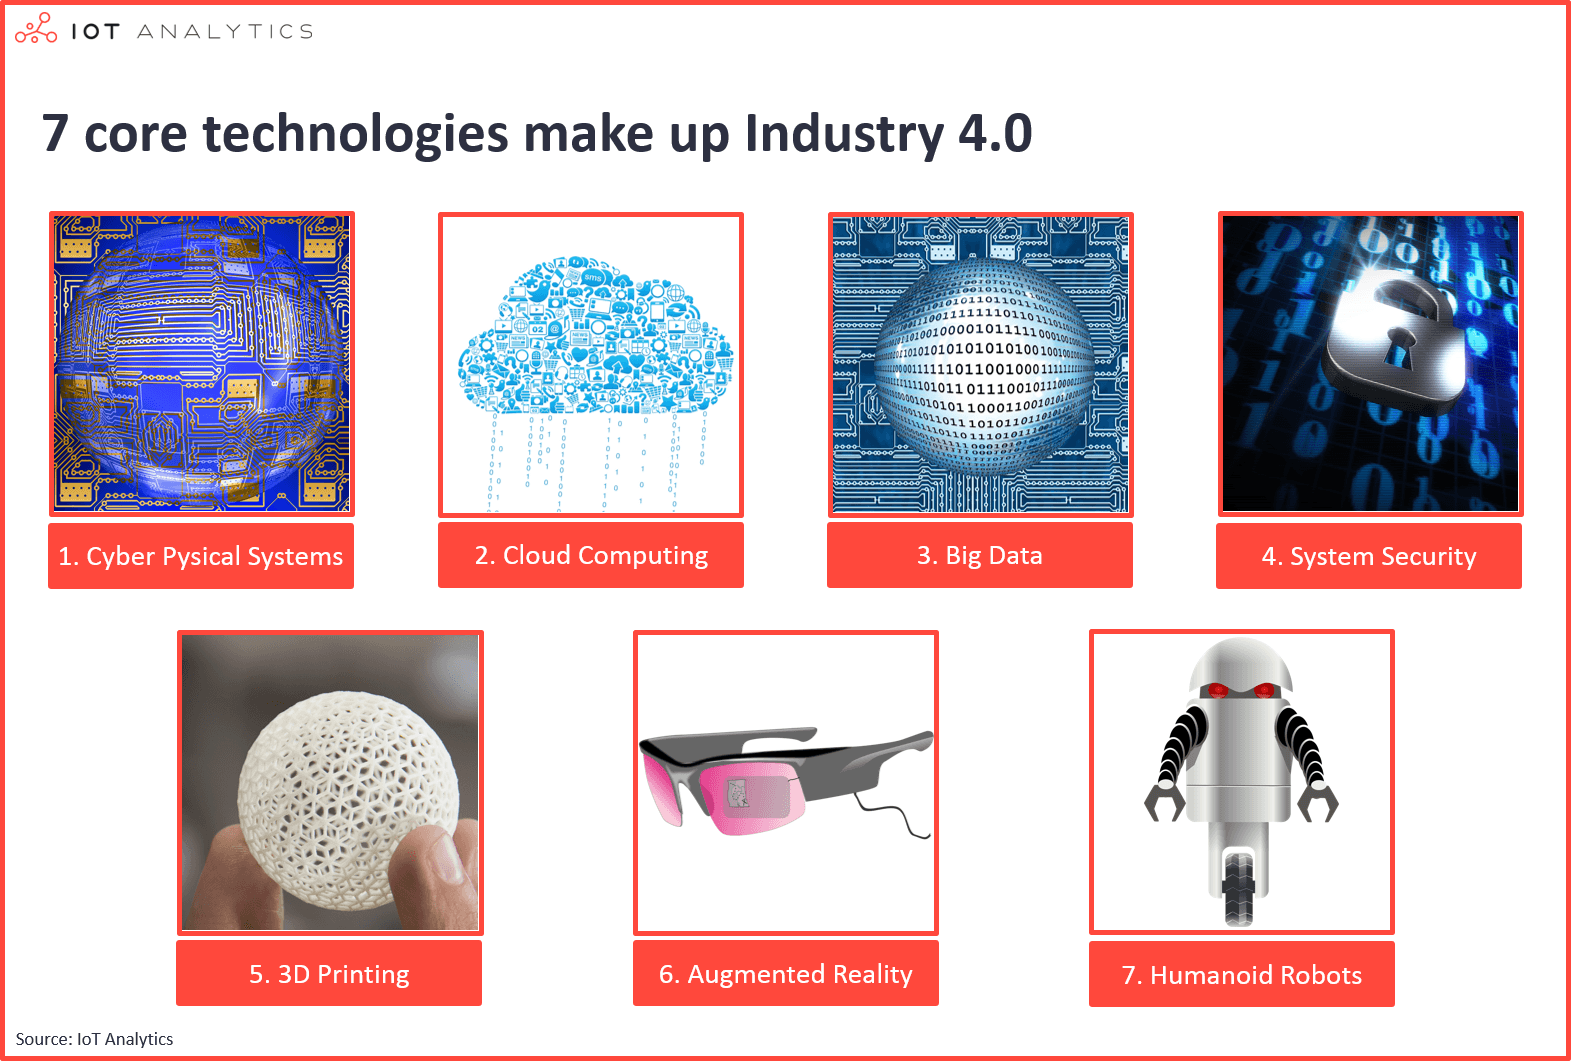 7 industrial technologies making up Industry 4.0